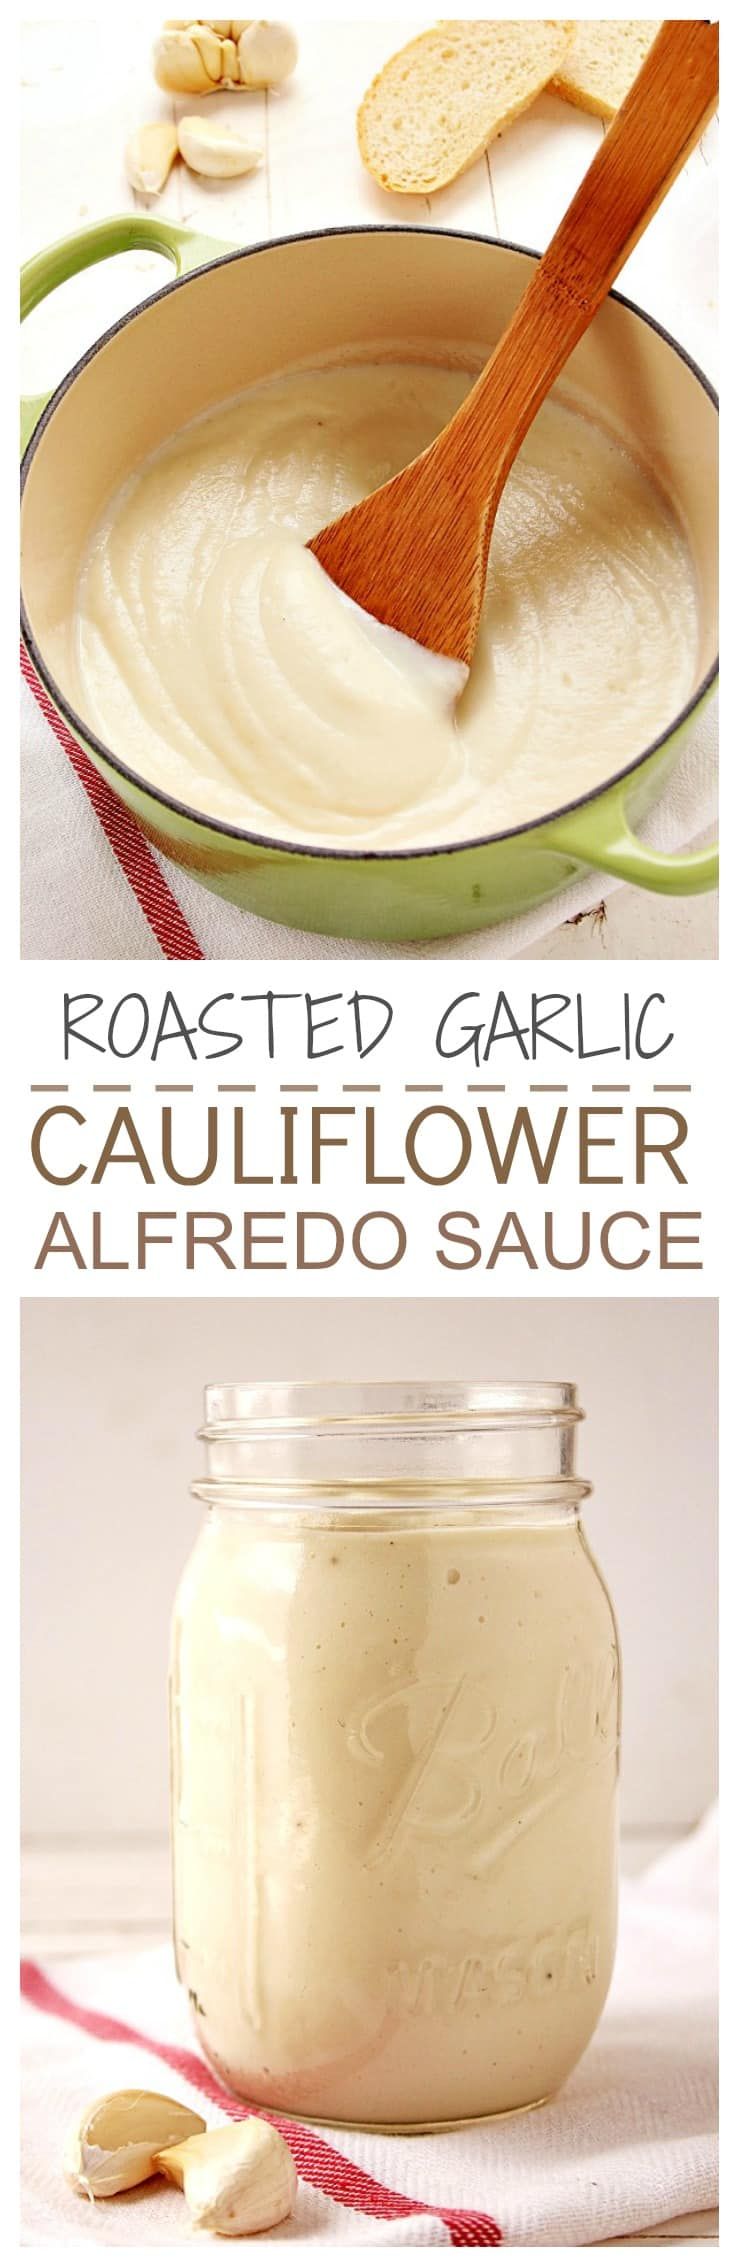 Healthy sauce made with cauliflower and roasted garlic with an addition of Parmesan. We cant stop eating it Great on pasta and pizza @crunchycreamysw Roasted Garlic Cauliflower Alfredo Sauce